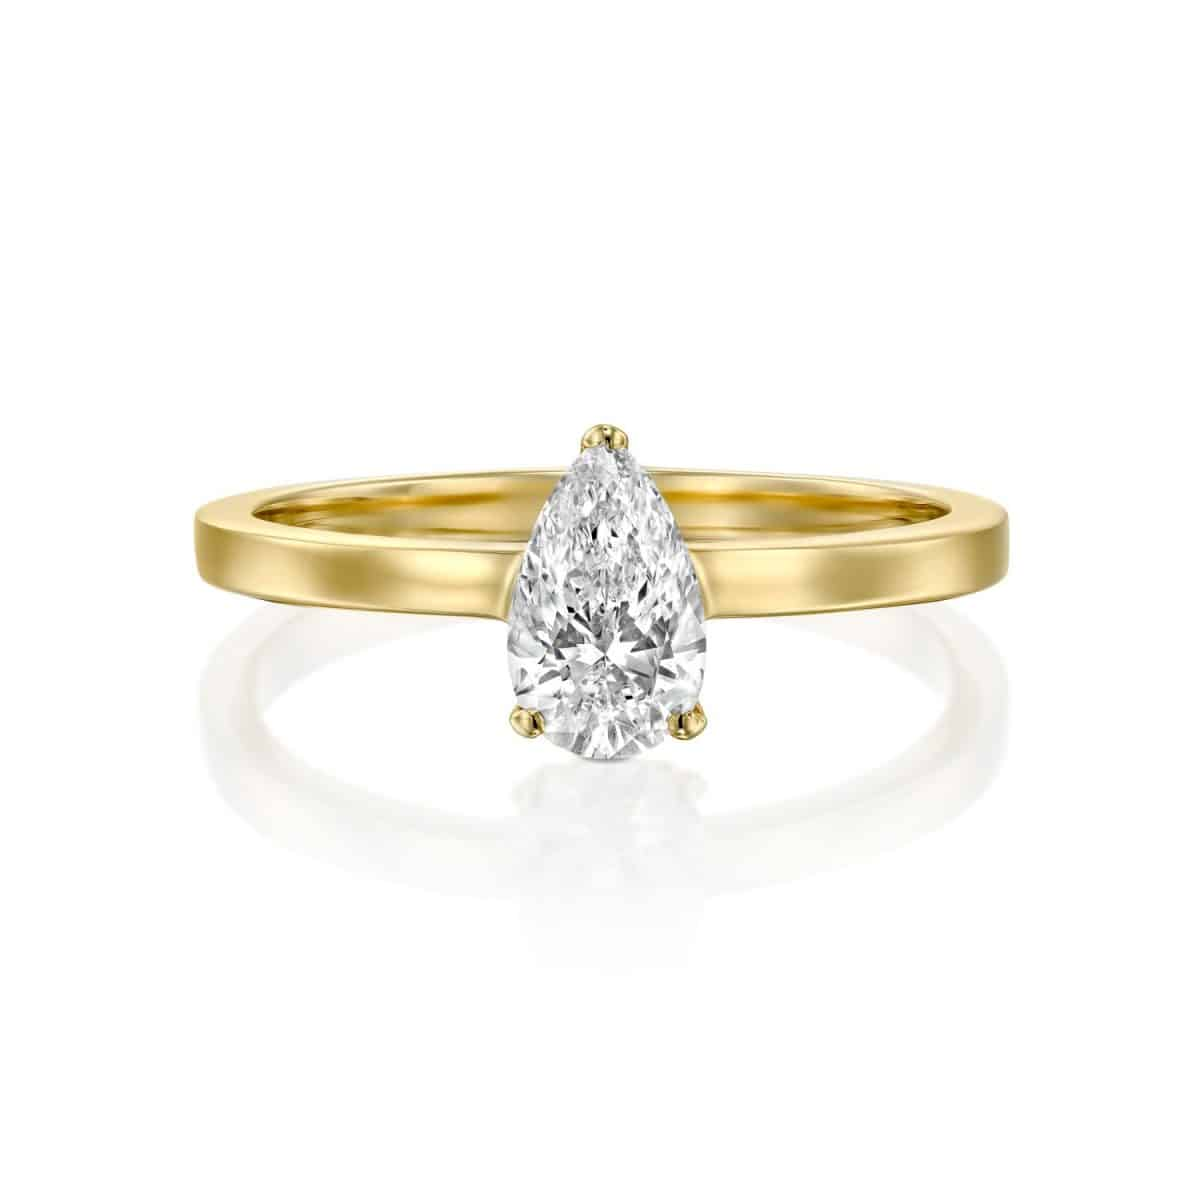 Brittney - Yellow Gold Lab Grown Diamond Engagement Ring 0.60ct. - laying